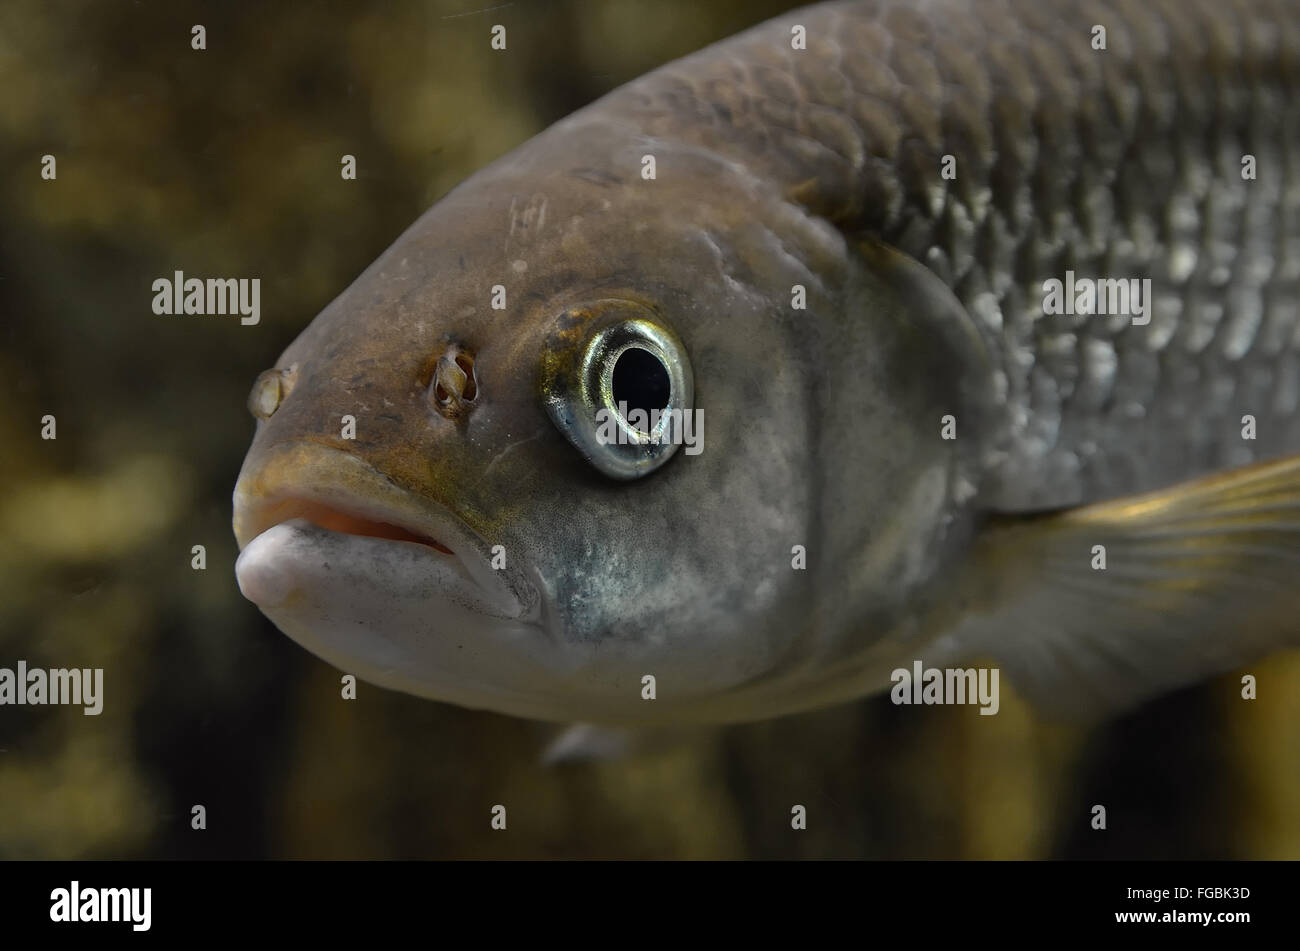 Close-Up Of Fish Underwater - Stock Image